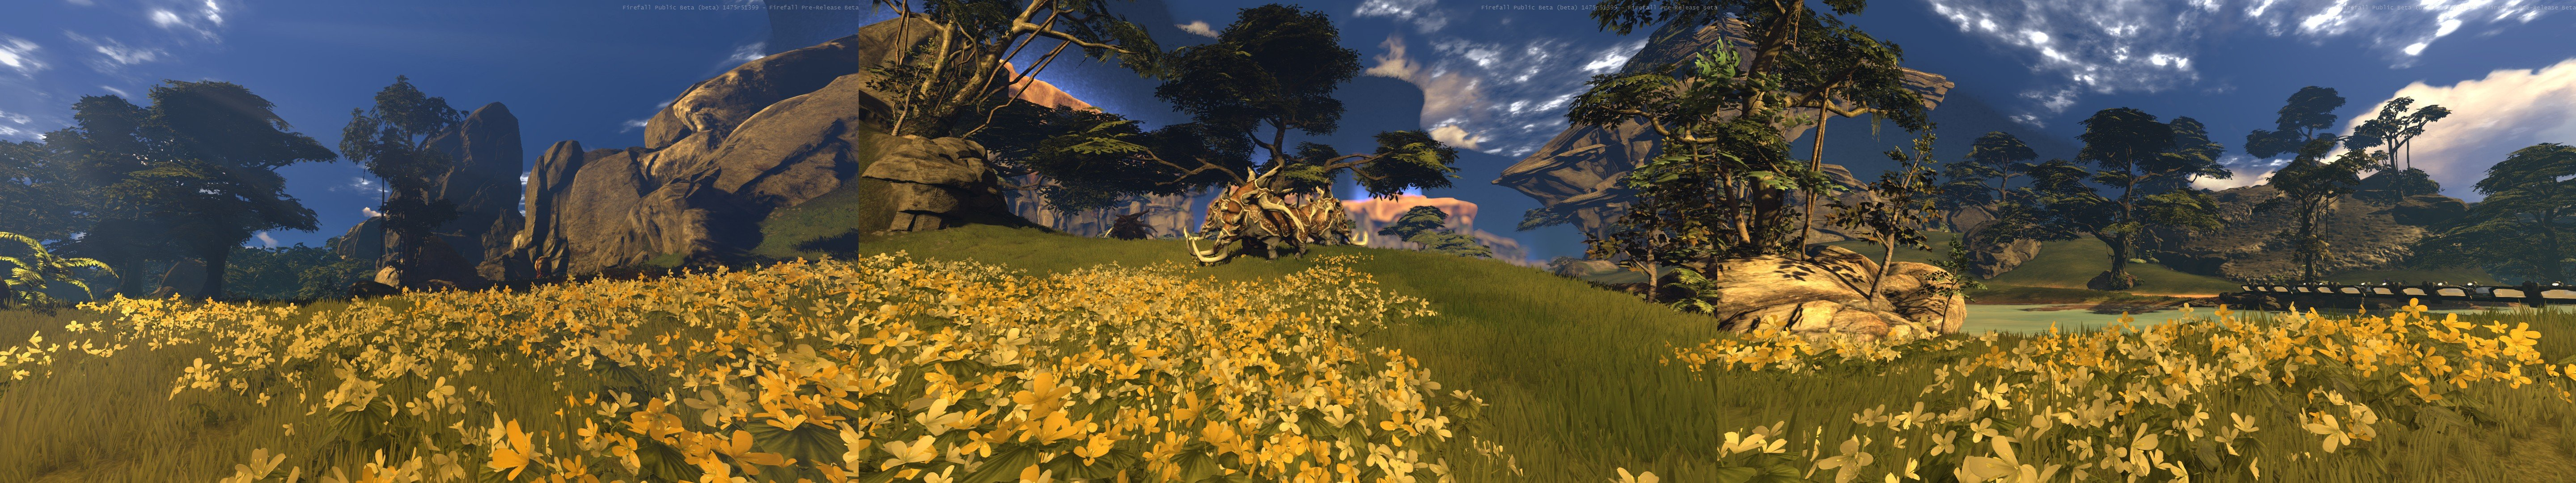 video games mmorpg multiscreen firefall first person